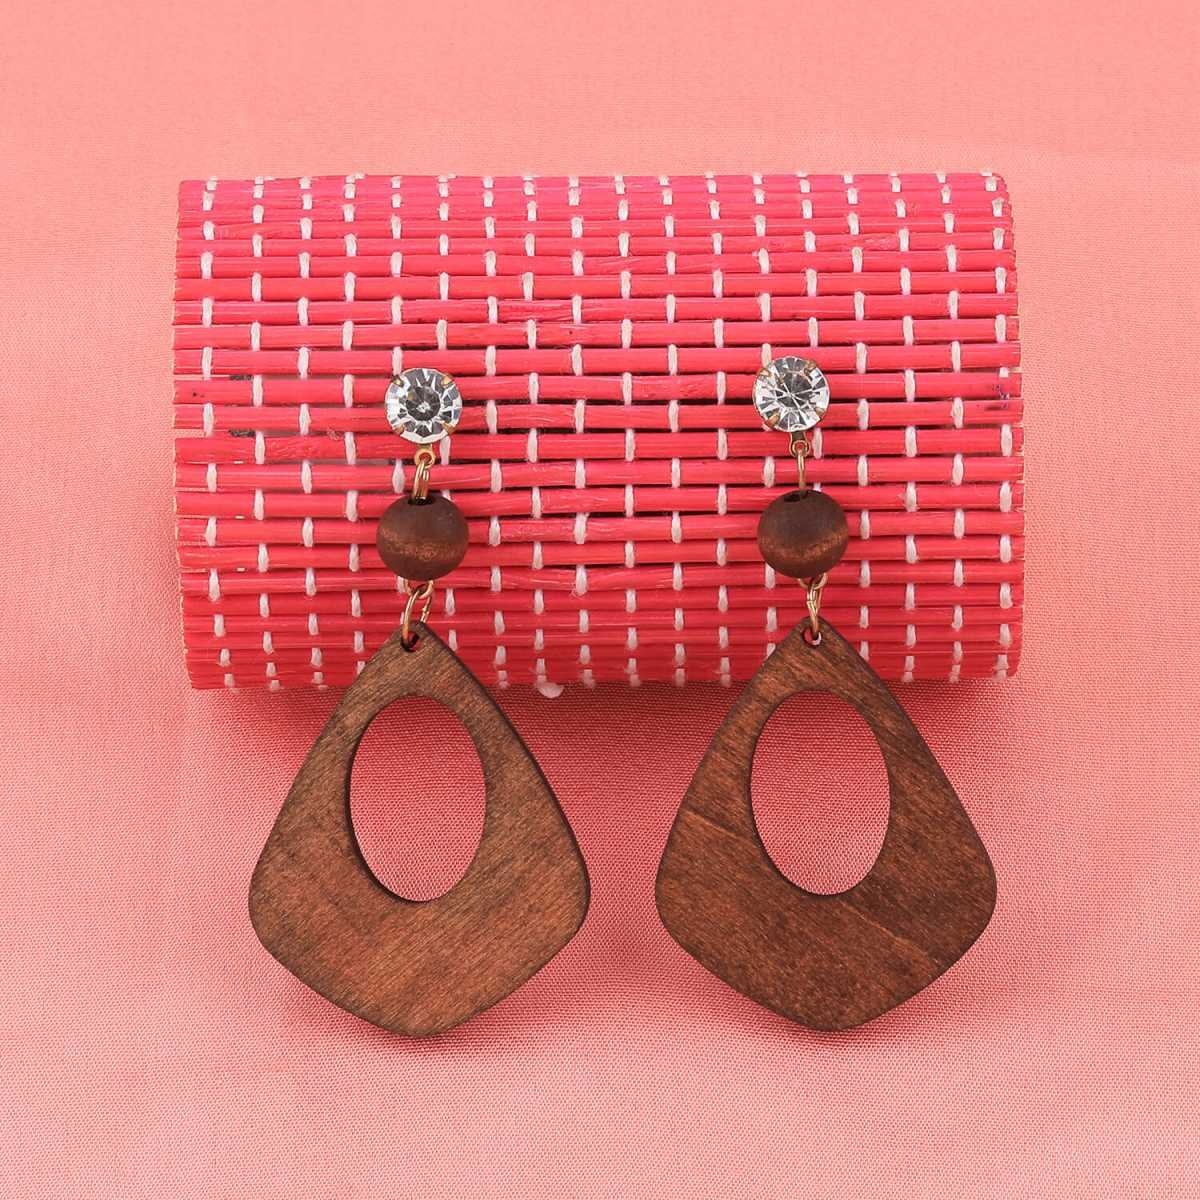 SILVER SHINE Designer Diamond Brown Wooden Earrings Perfect and Different Look For Women Girl